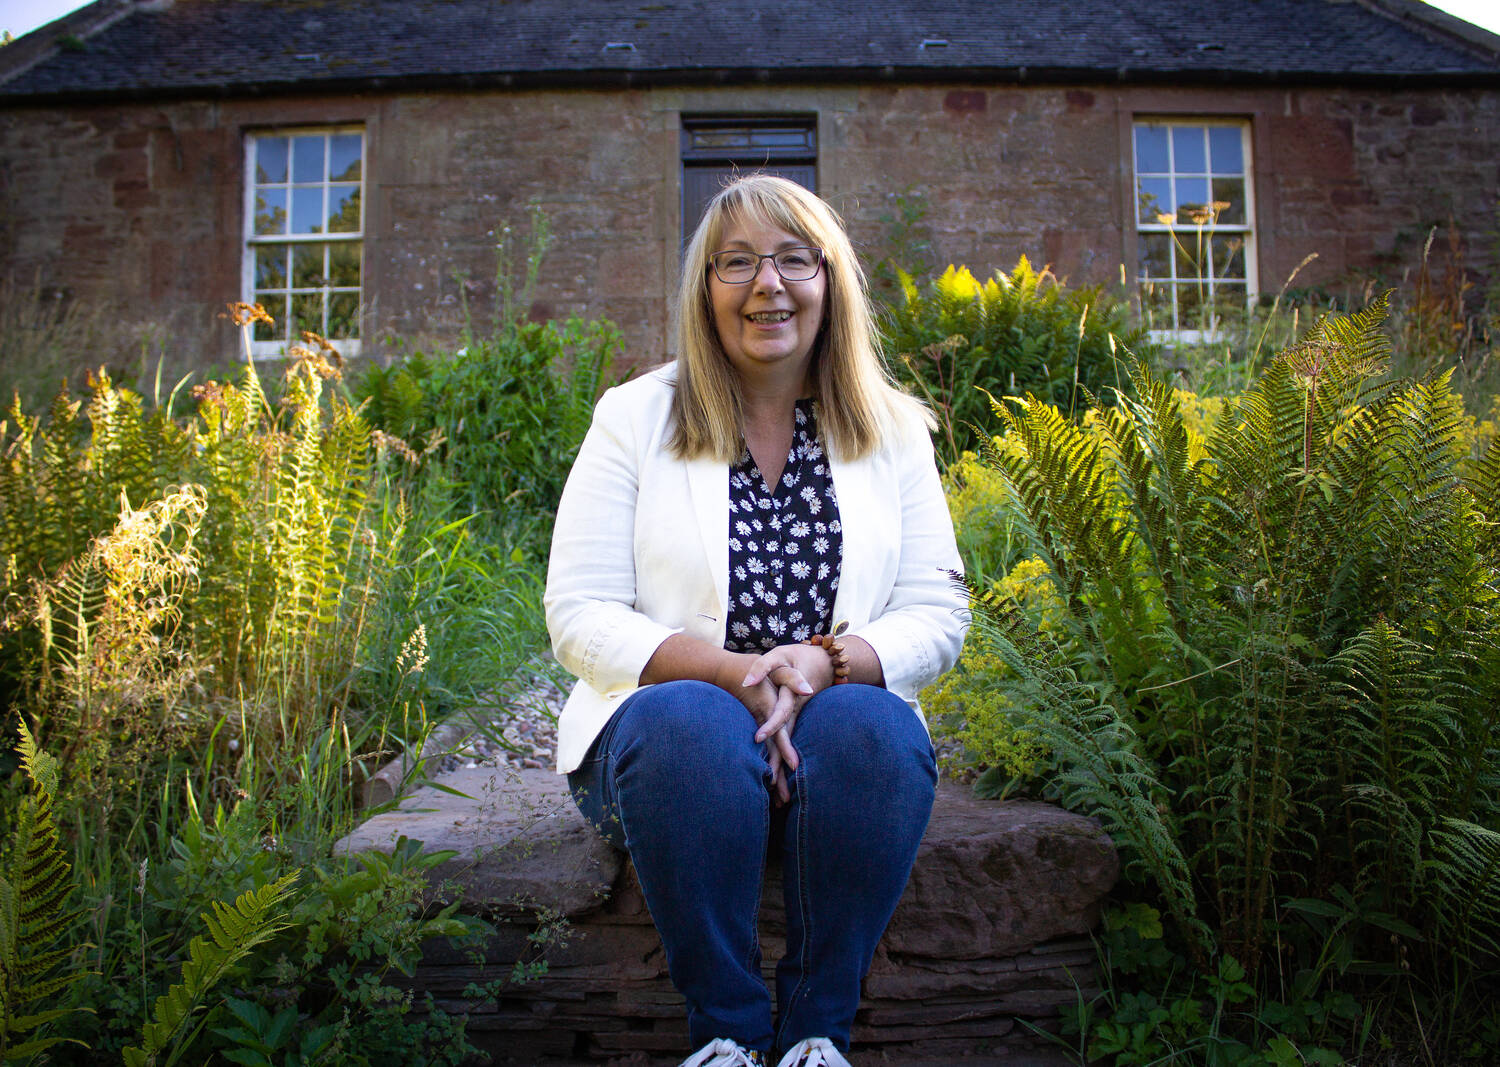 Author Sandra Ireland was inspired by the Angus watermill for her new book